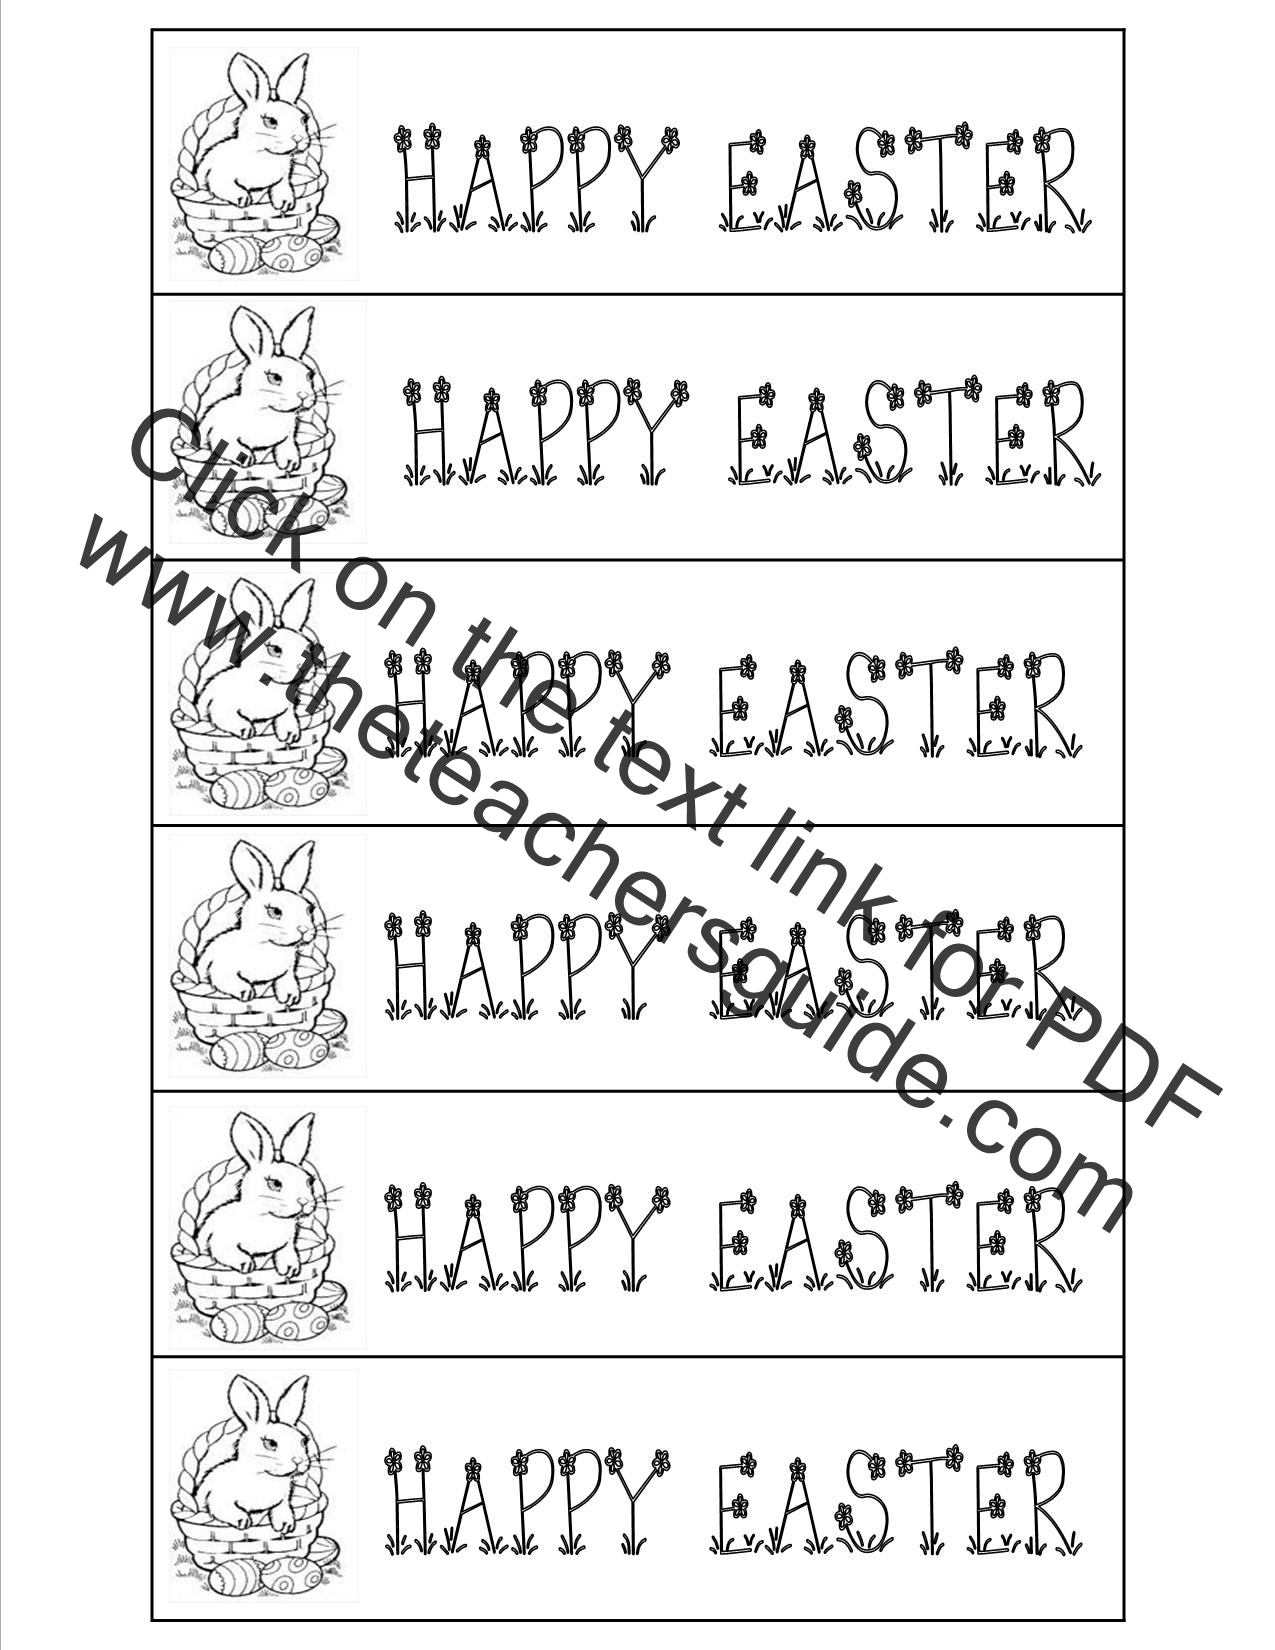 worksheet Free Easter Worksheets easter worksheets and printouts bookmarks